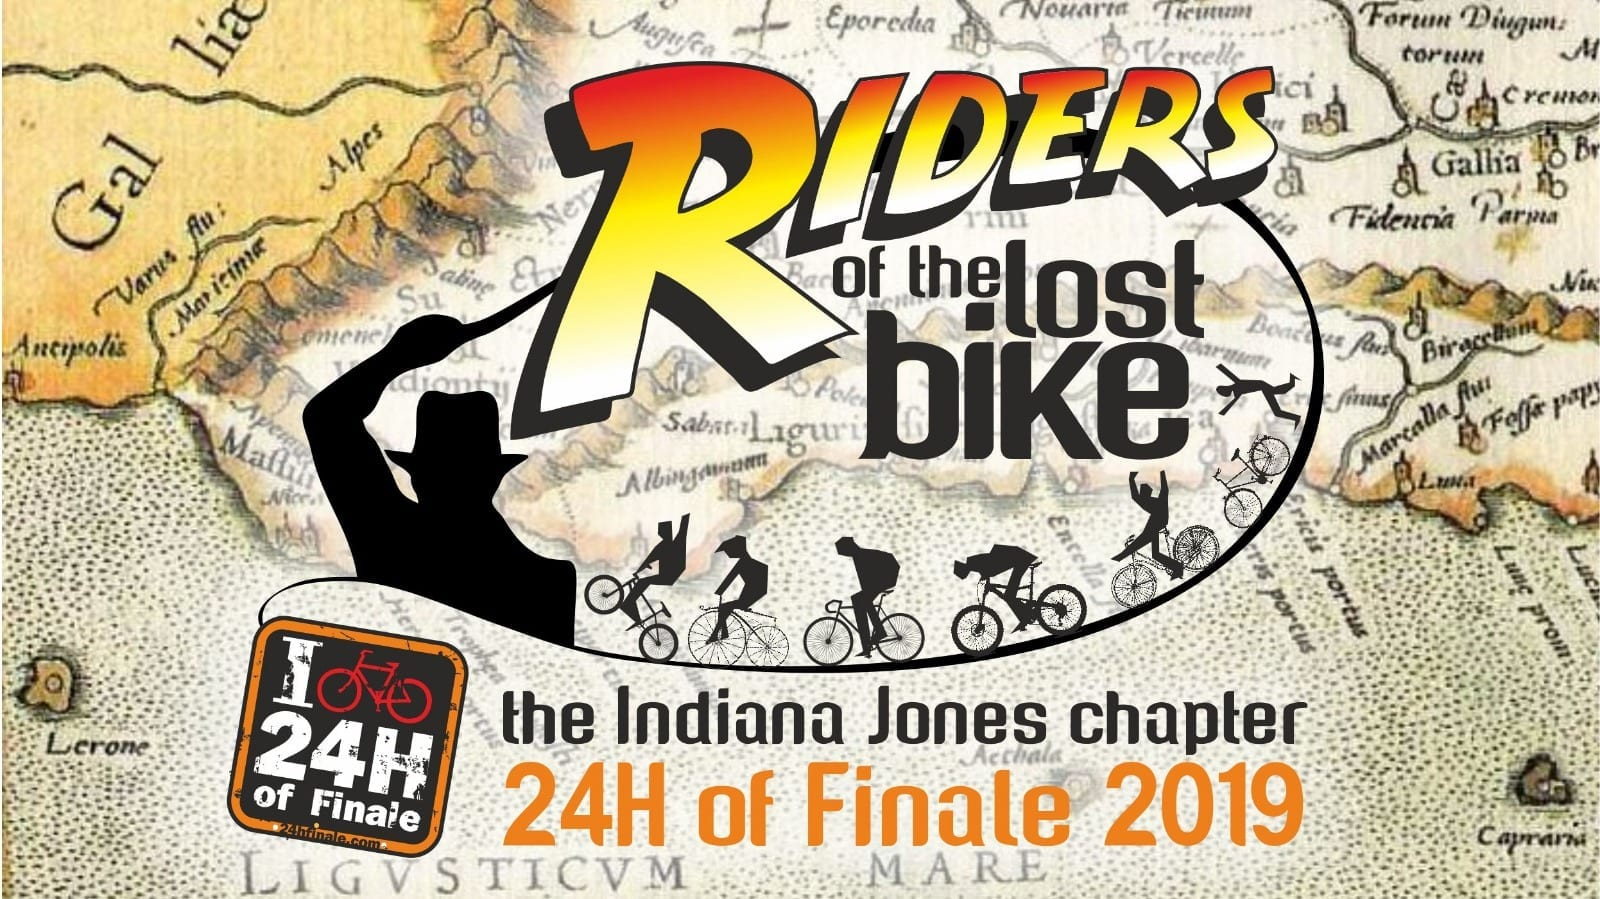 24H of Finale - Riders of the lost bike